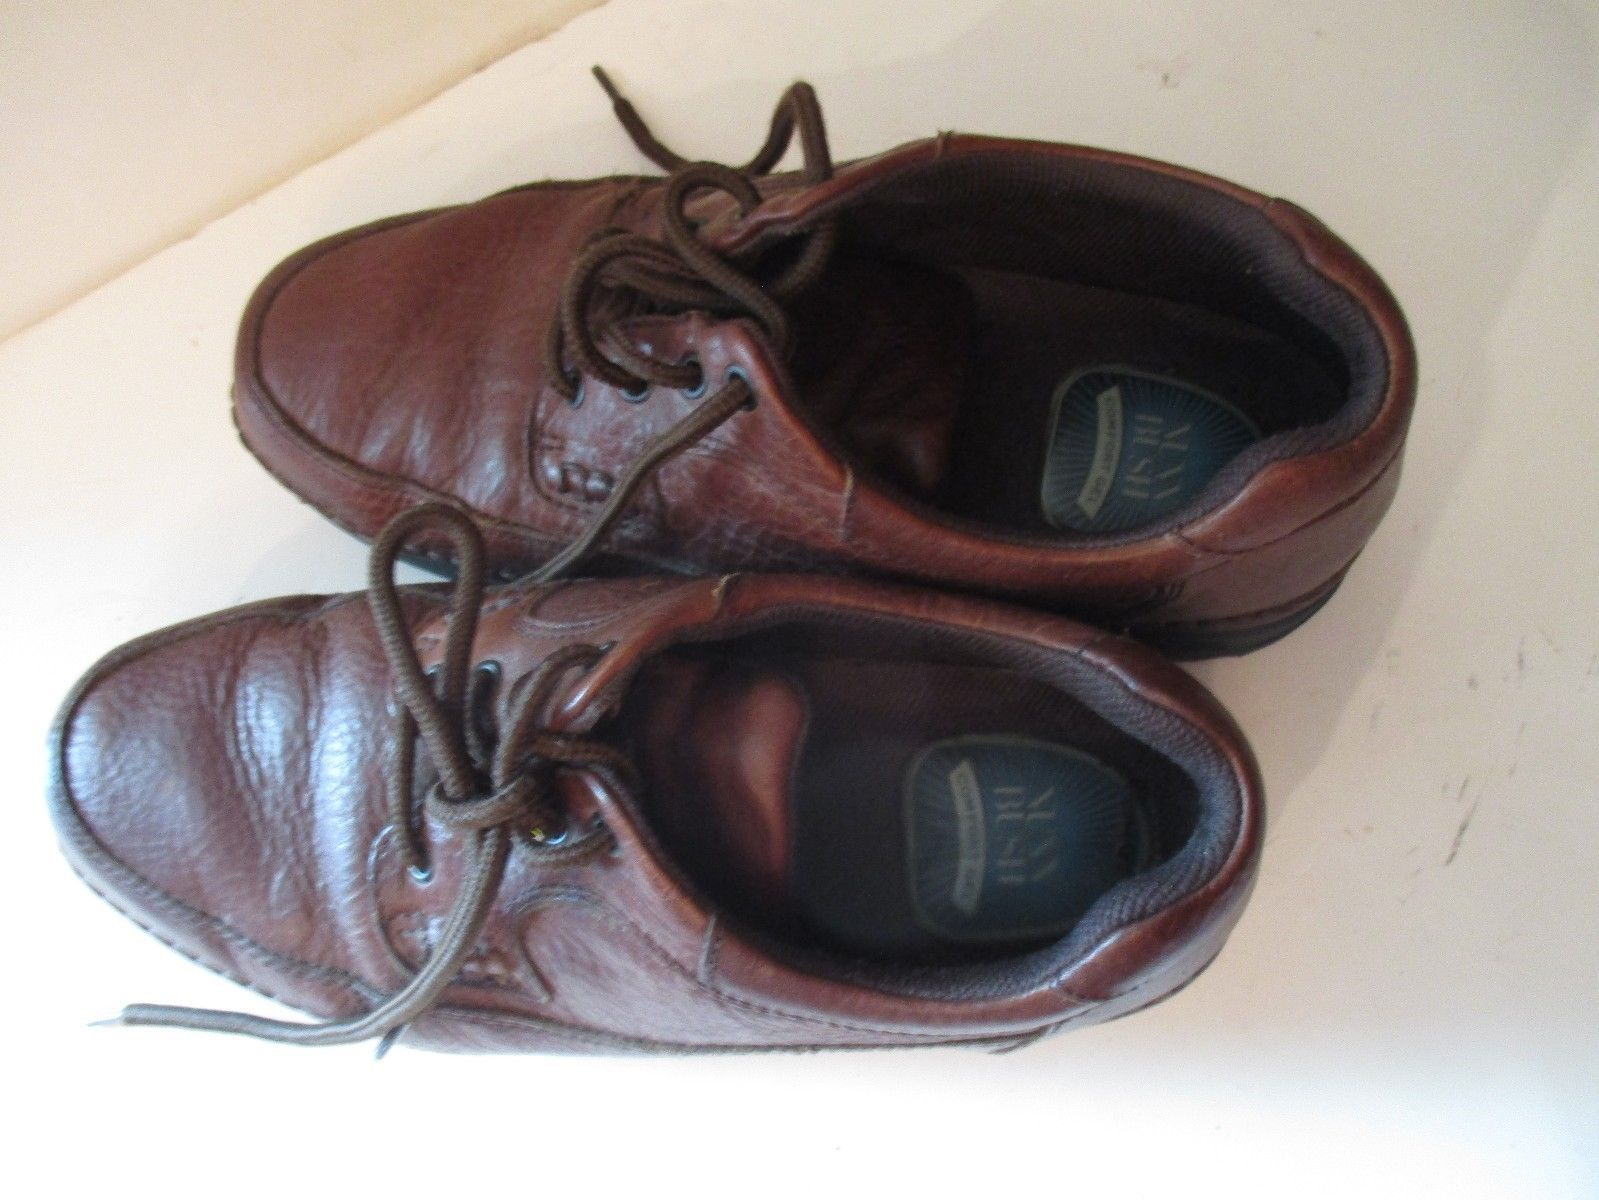 763c4406055bf 57. 57. Previous. Nunn Bush Brown Leather Cameron Moc Toe Oxford Shoes  83890-64 Mens 11M · Nunn Bush ...